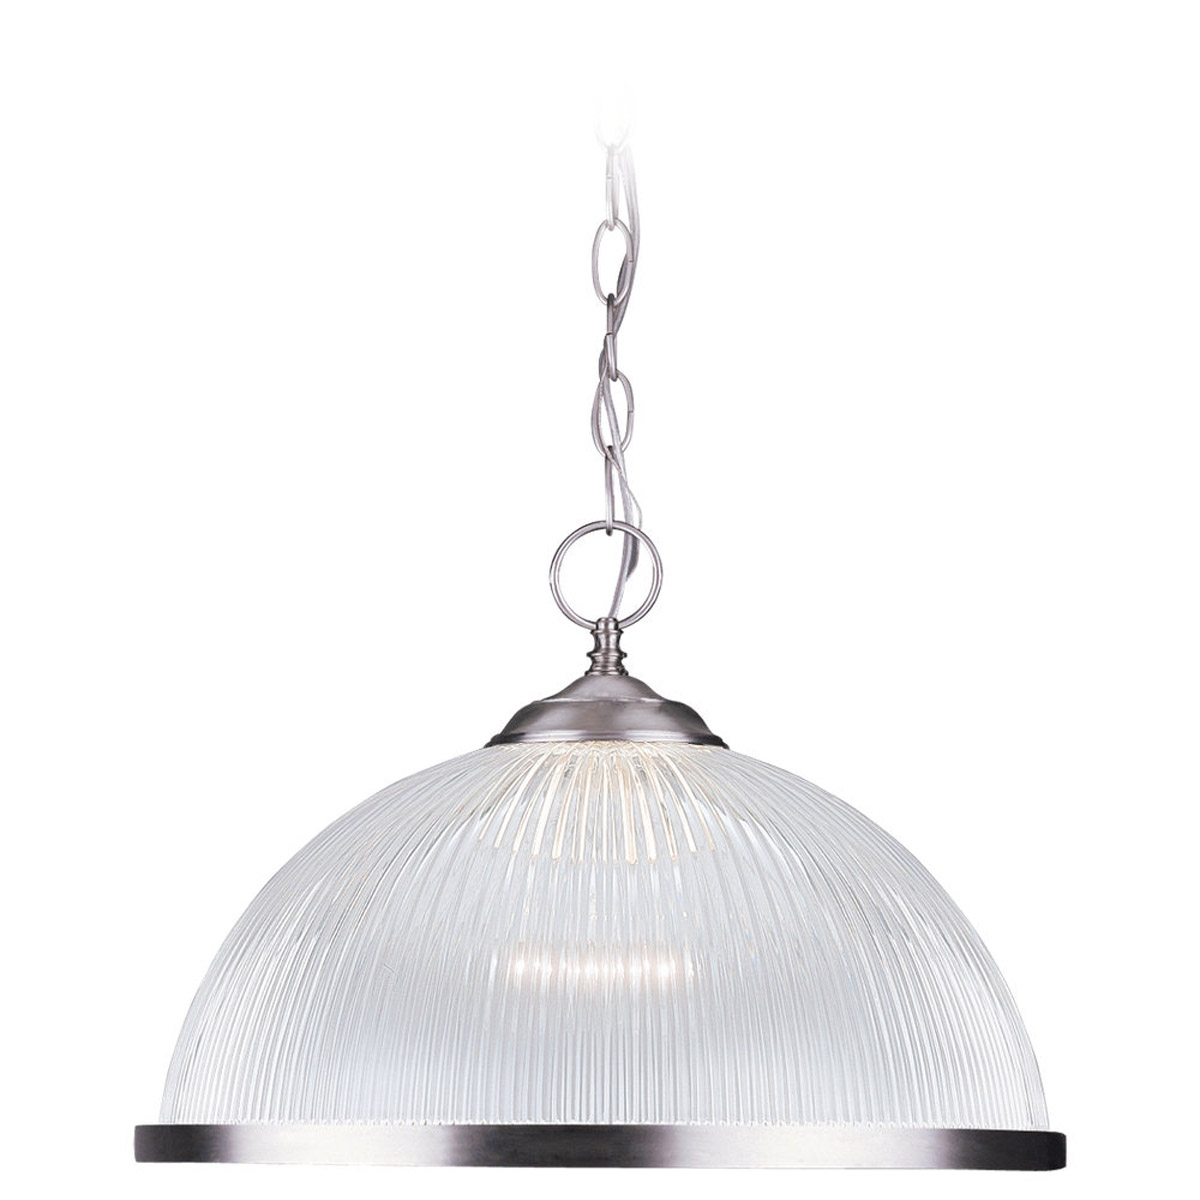 Sea Gull Lighting Signature 1 Light Pendant in Brushed Nickel 6641-962